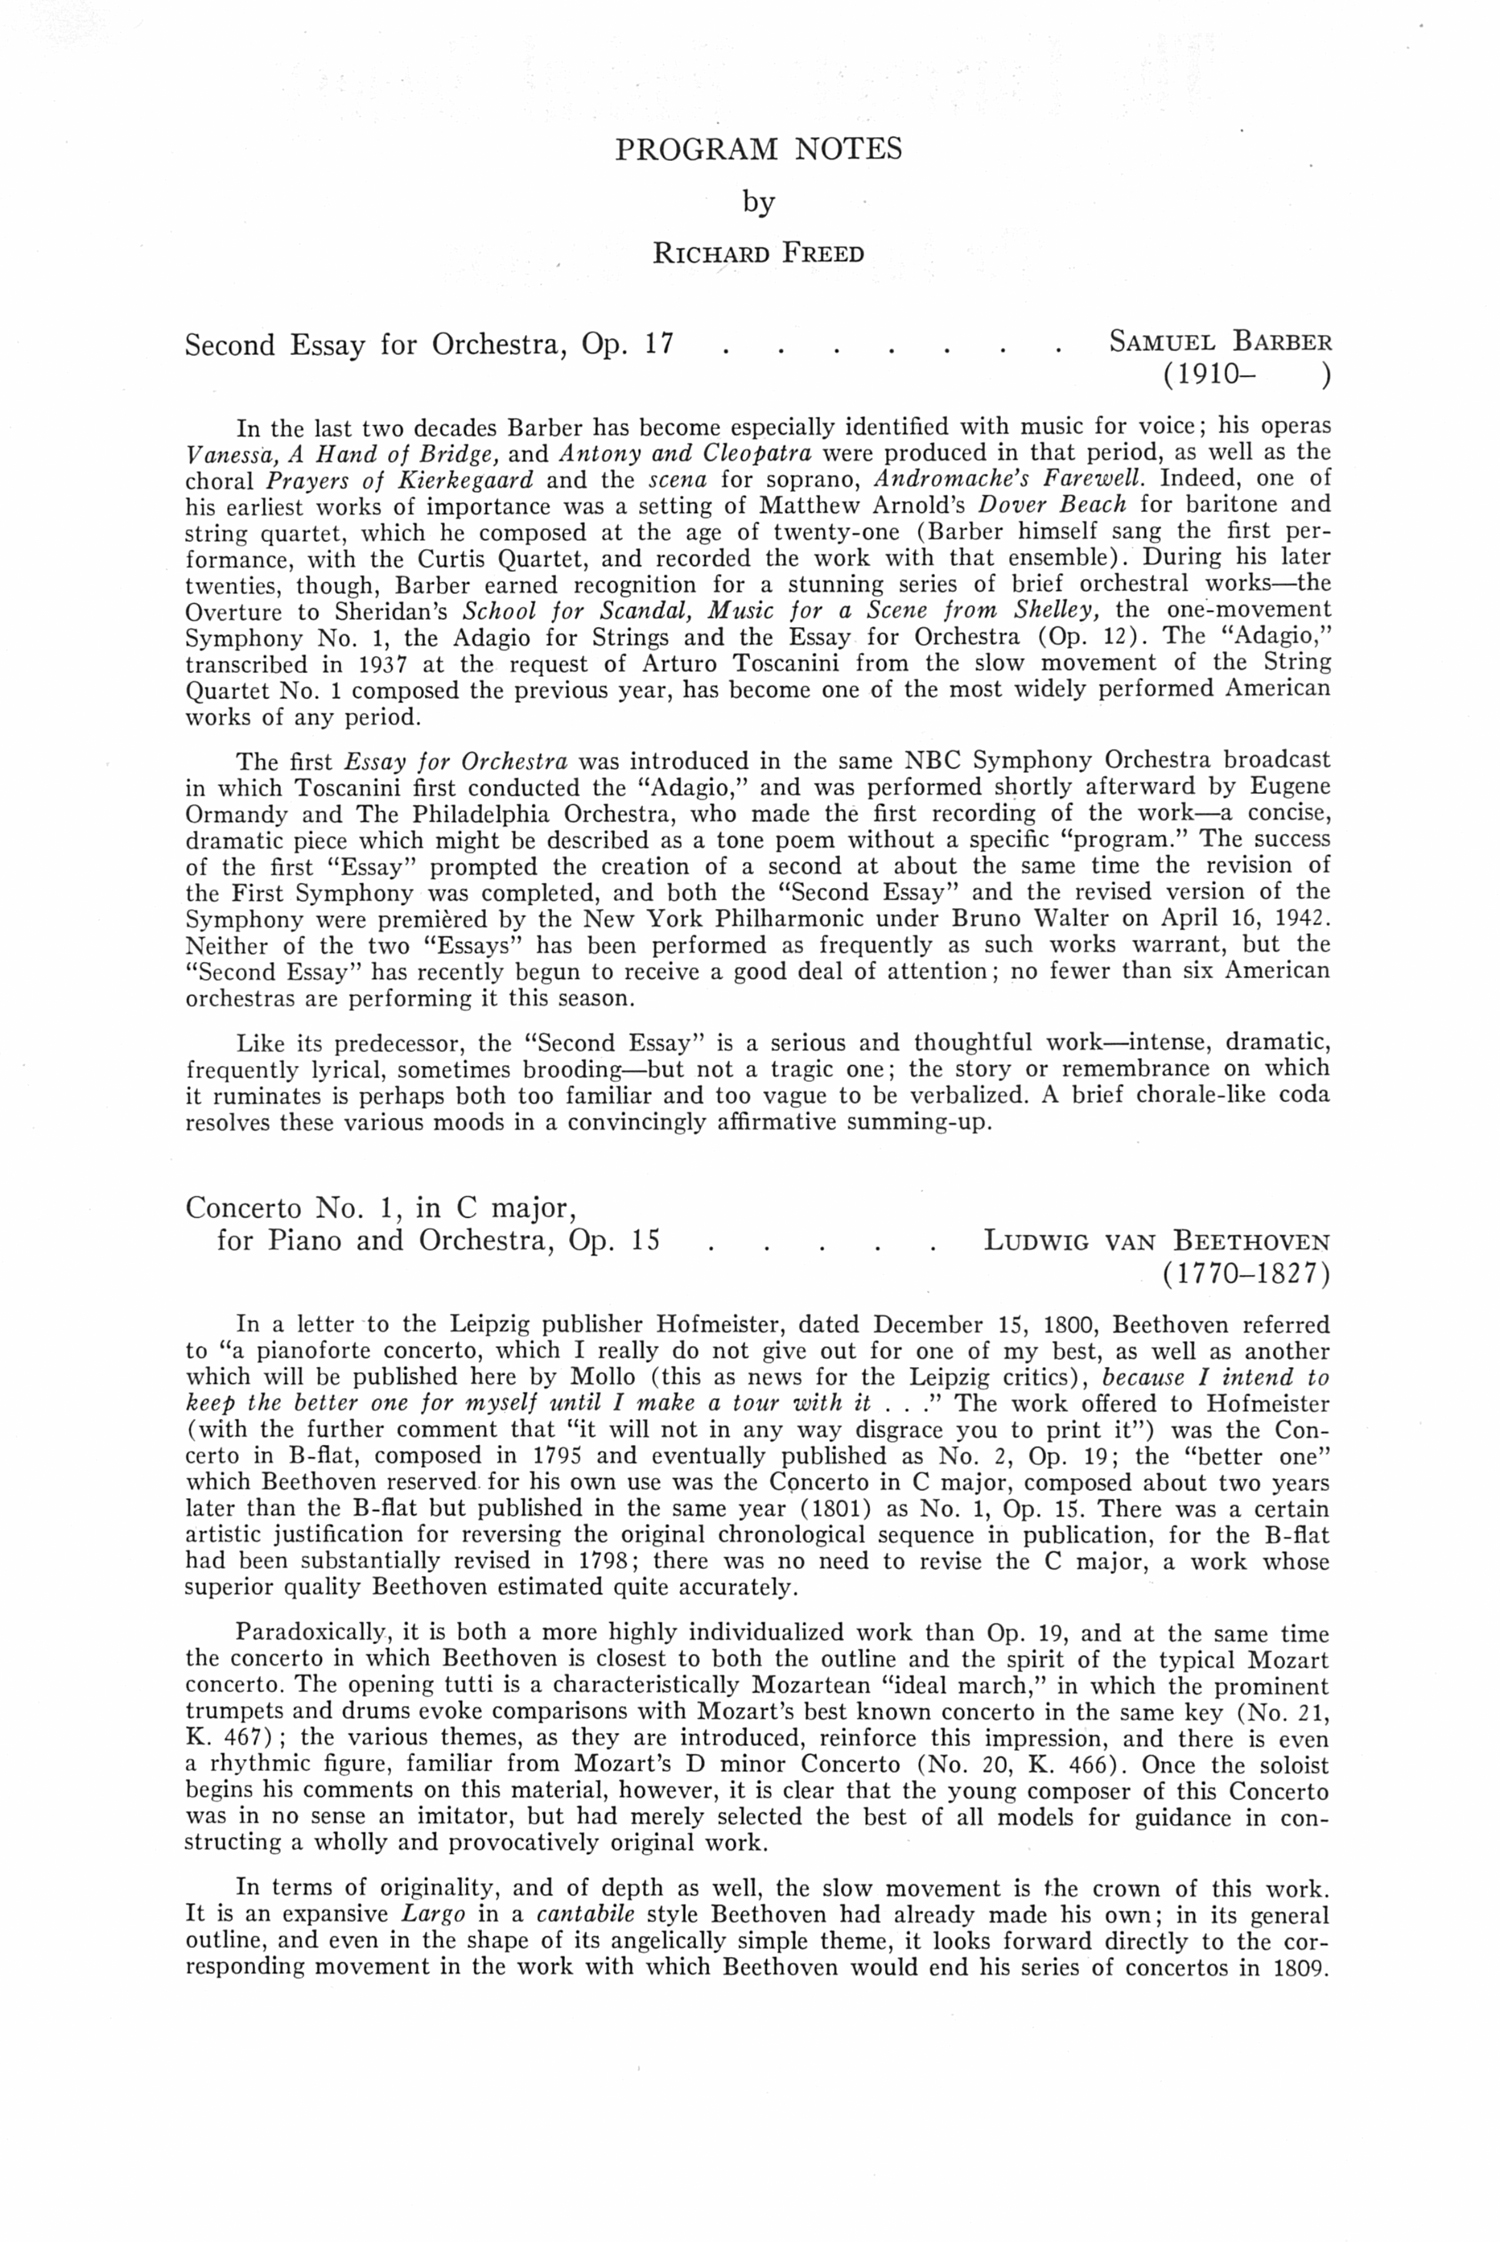 second essay for orchestra op. 17